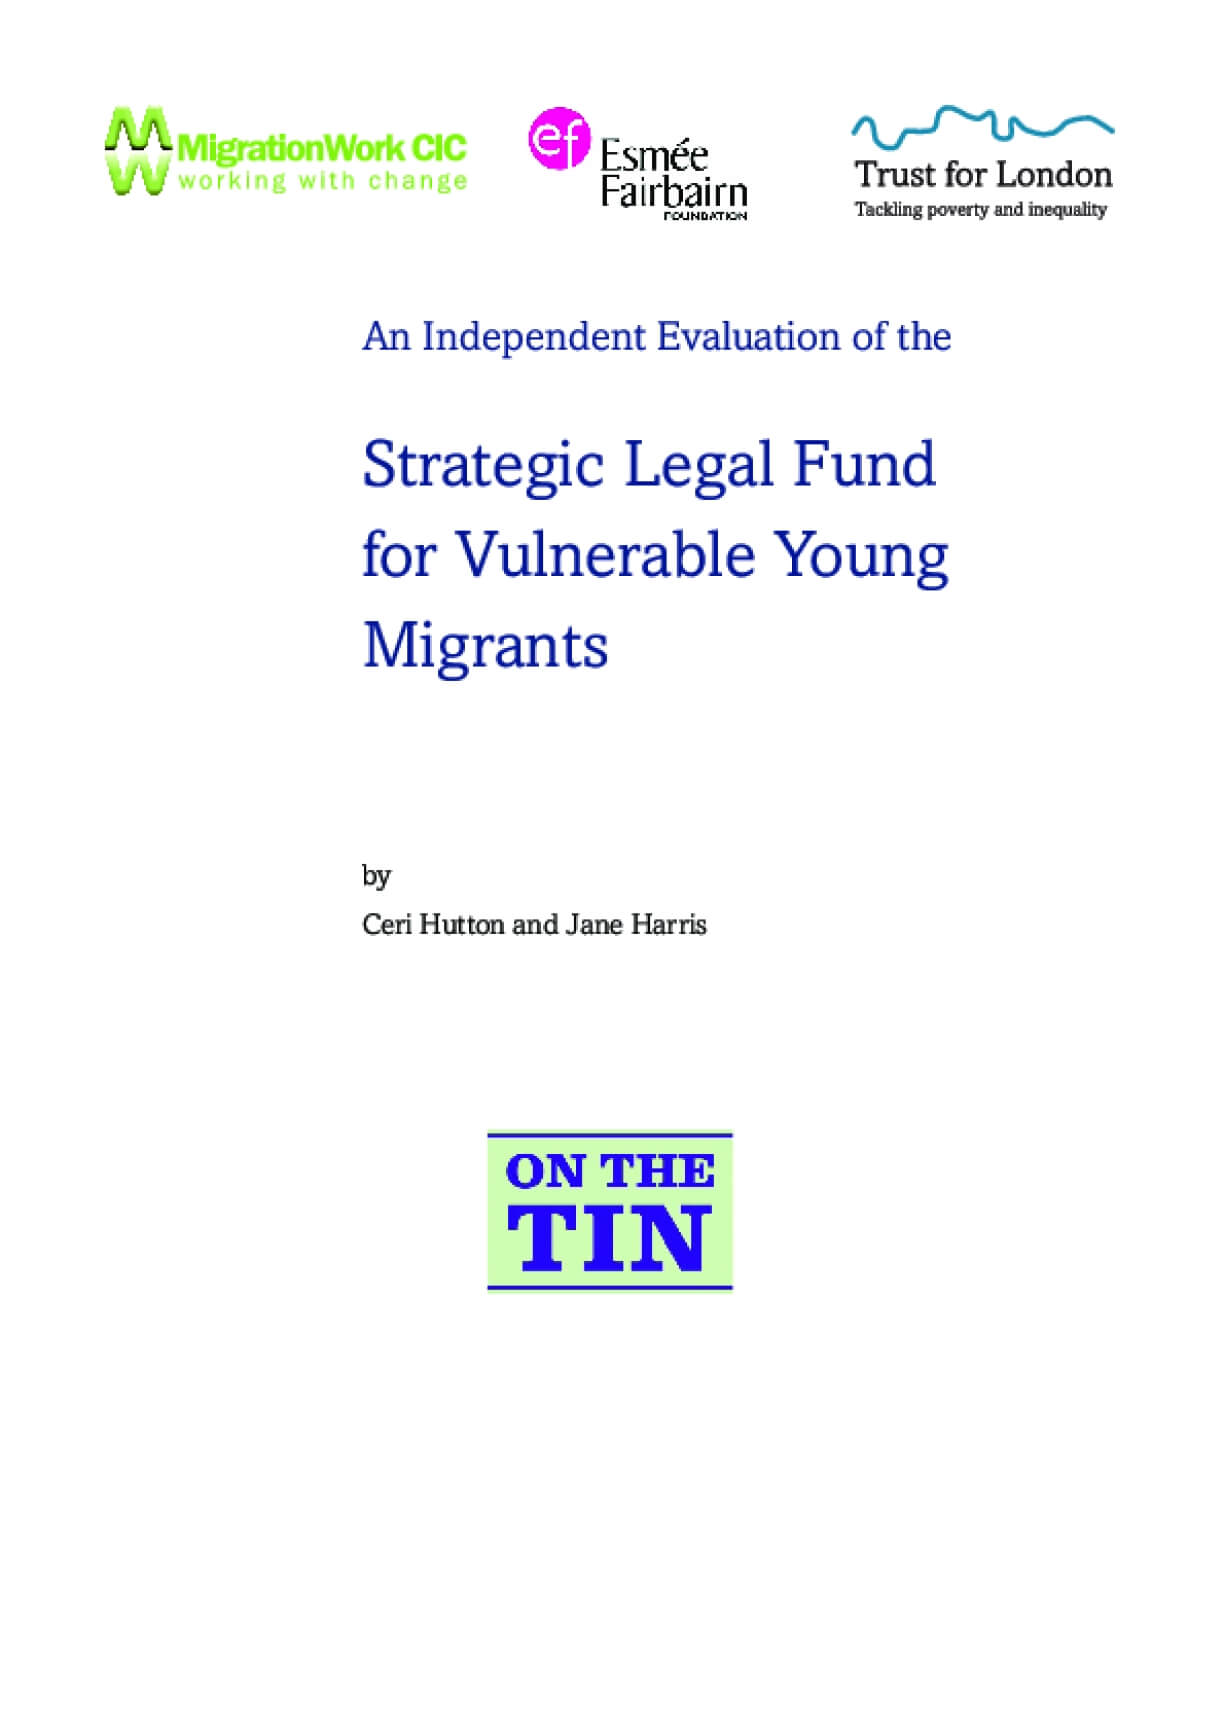 An Independent Evaluation of the Strategic Legal Fund for Vulnerable Young Migrants